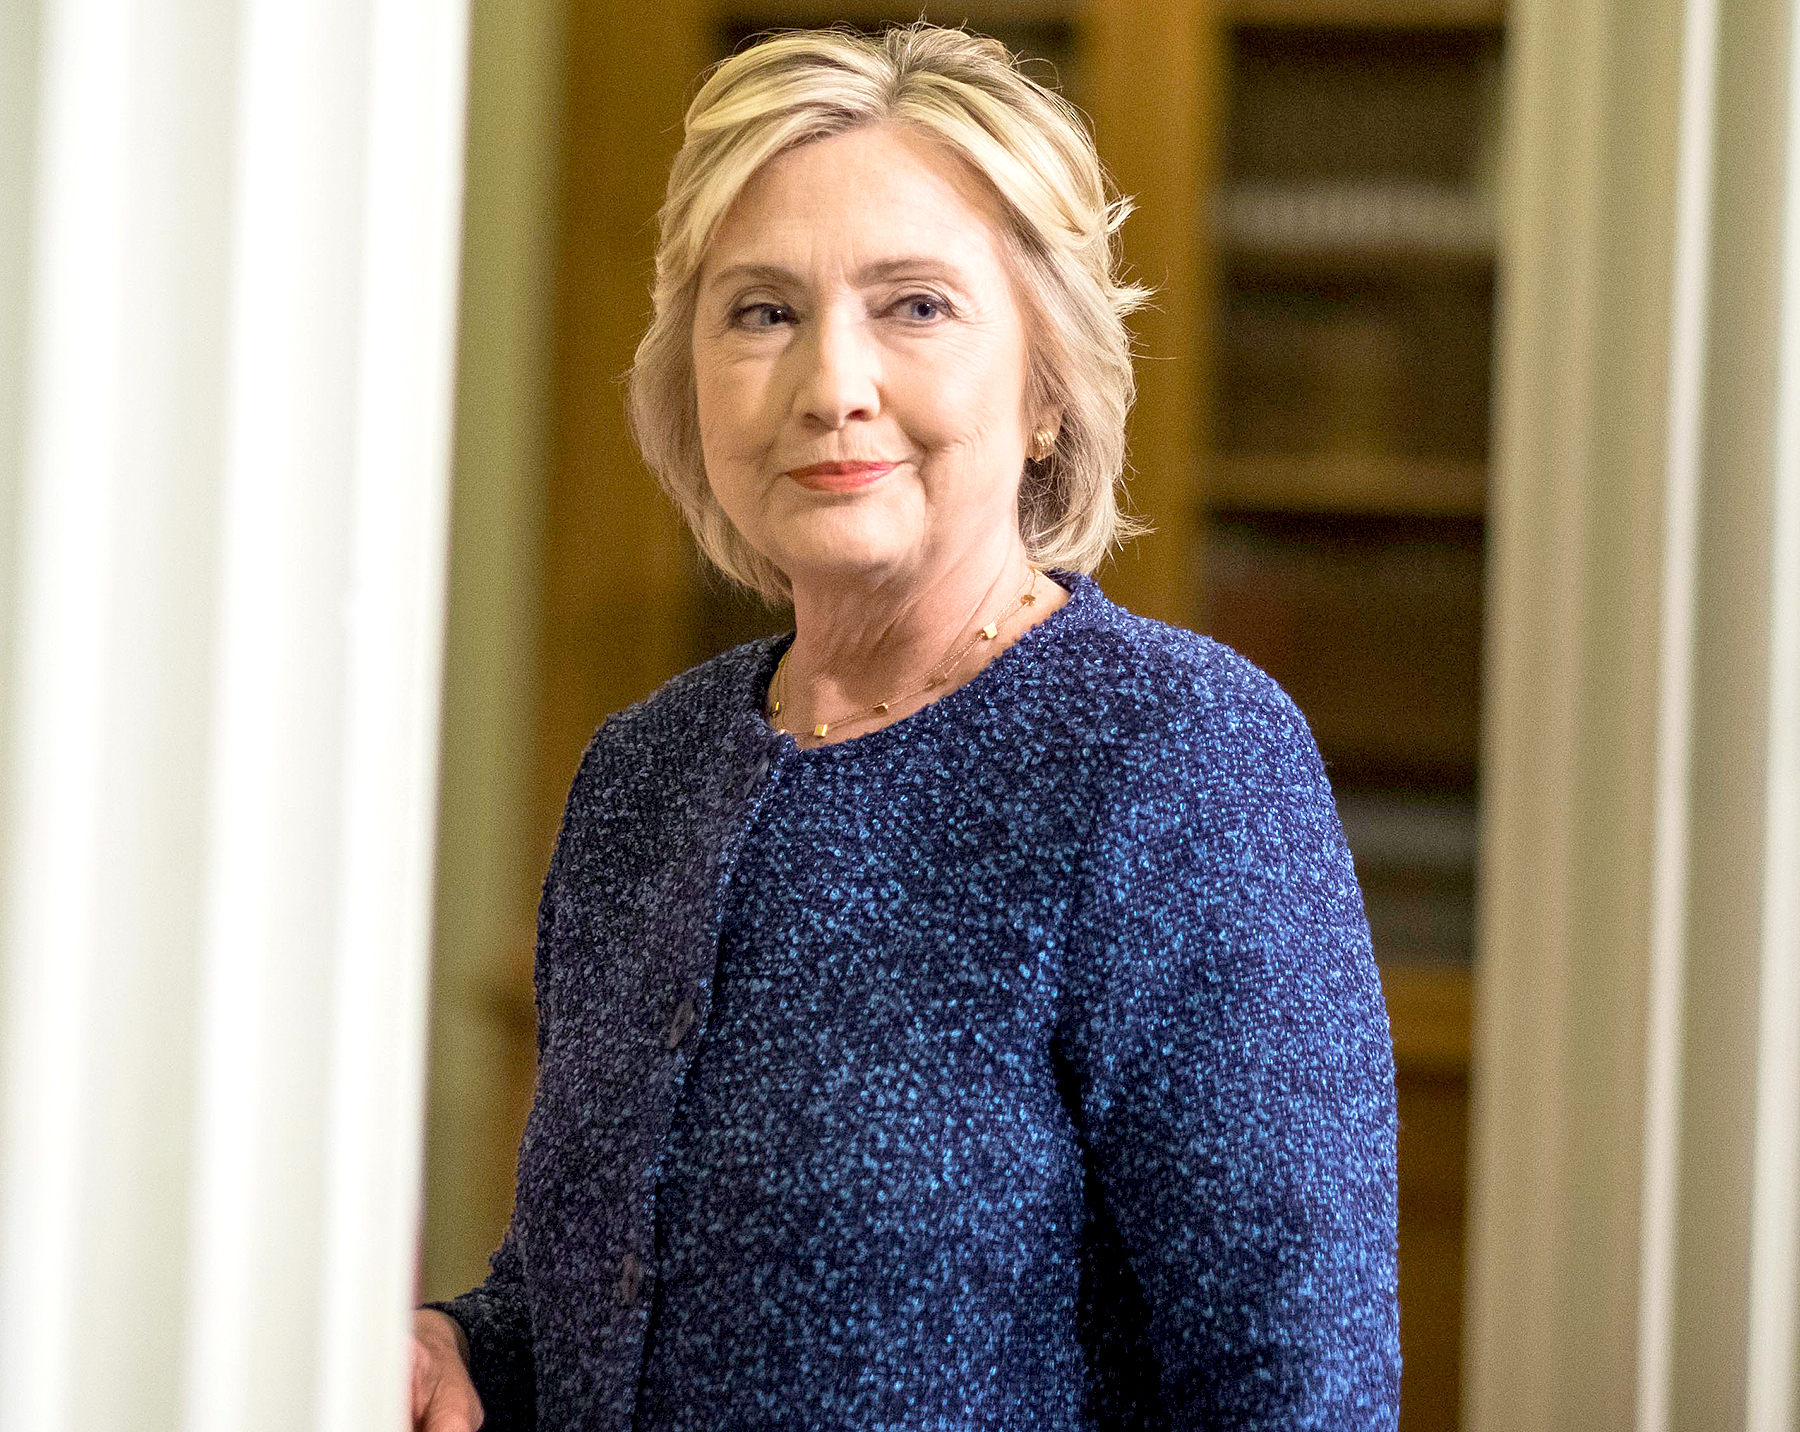 Democratic Nominee for President of the United States former Secretary of State Hillary Clinton speaks to journalists after meeting national security experts for a National Security Working Session at the New York Historical Society Library in Manhattan, New York on Friday September 9, 2016.